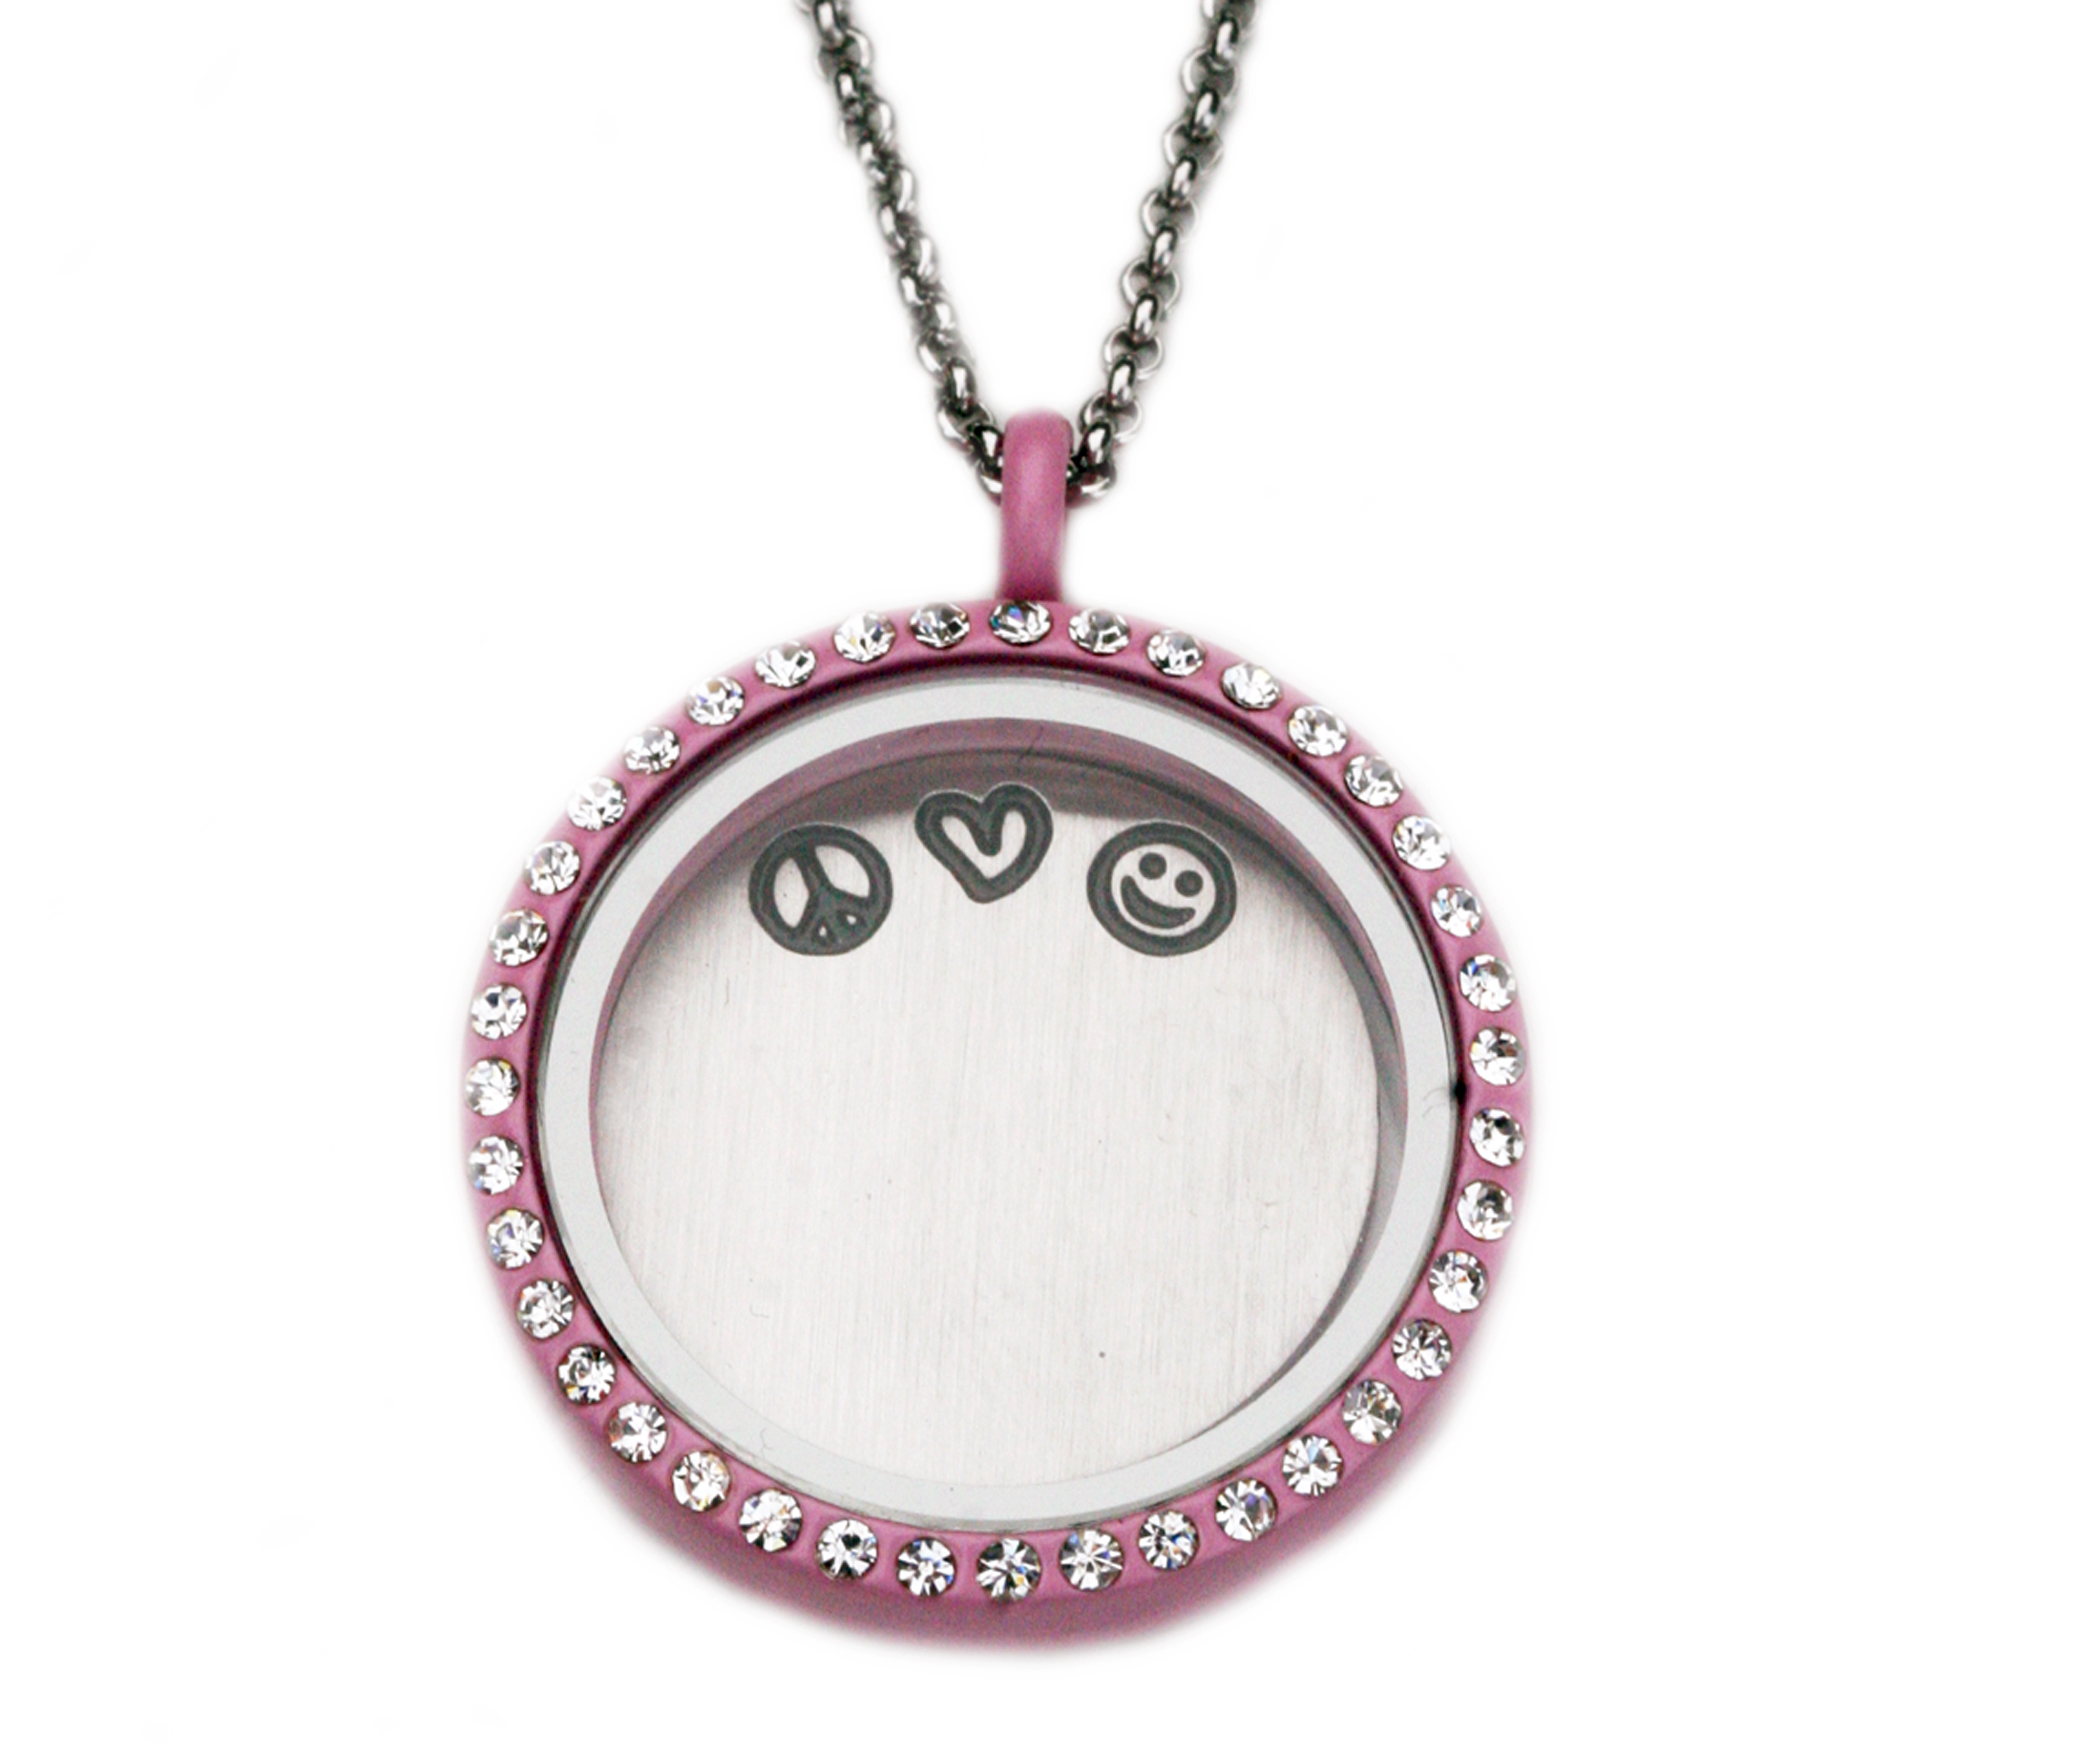 necklace charm memories foxyfunk in now lockets nerd designs floating